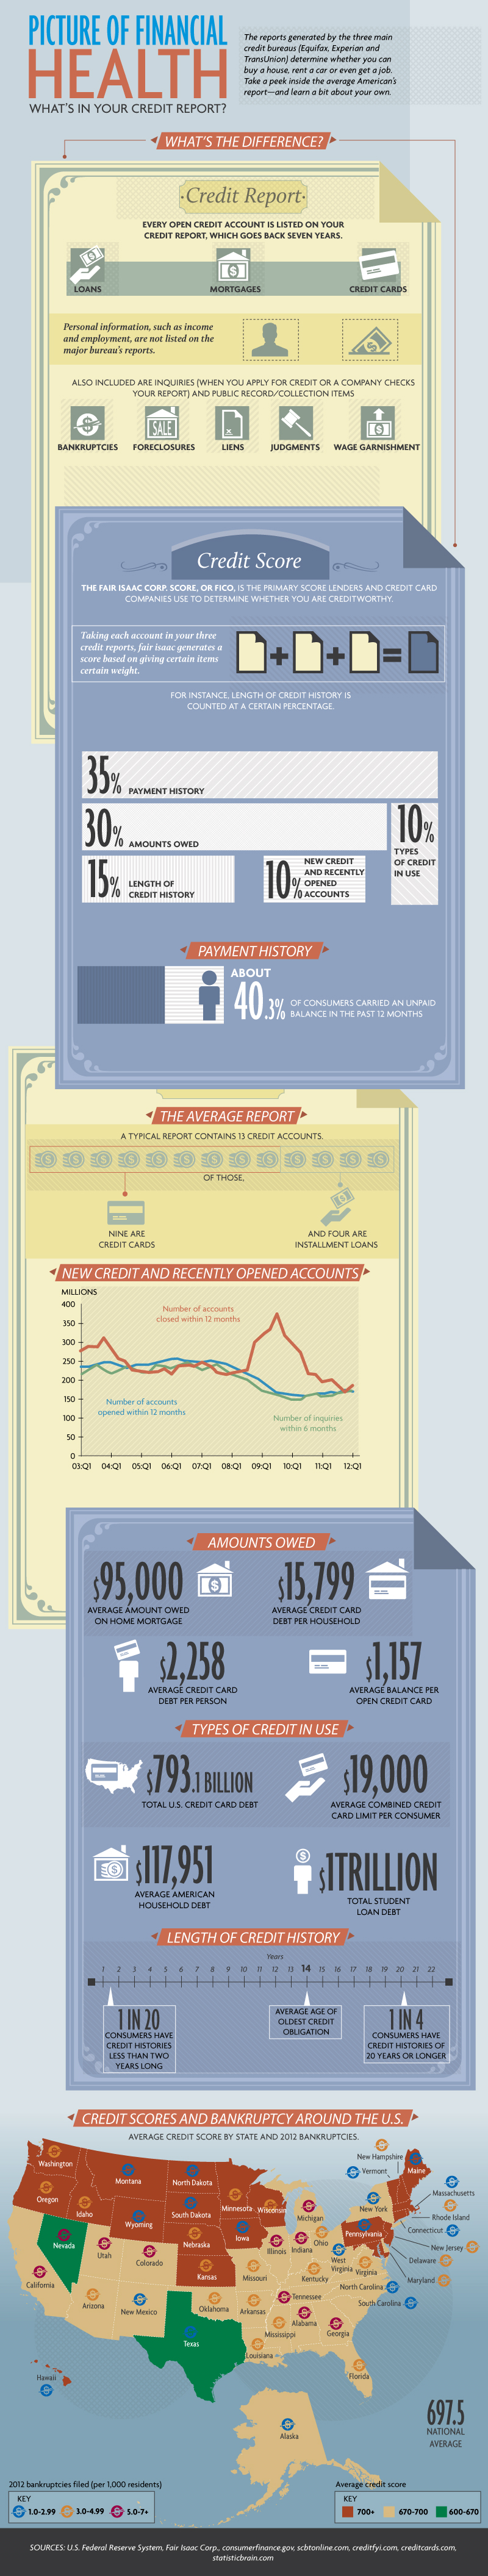 credit reports and household debt an infographic sulaiman law group ltd. Black Bedroom Furniture Sets. Home Design Ideas